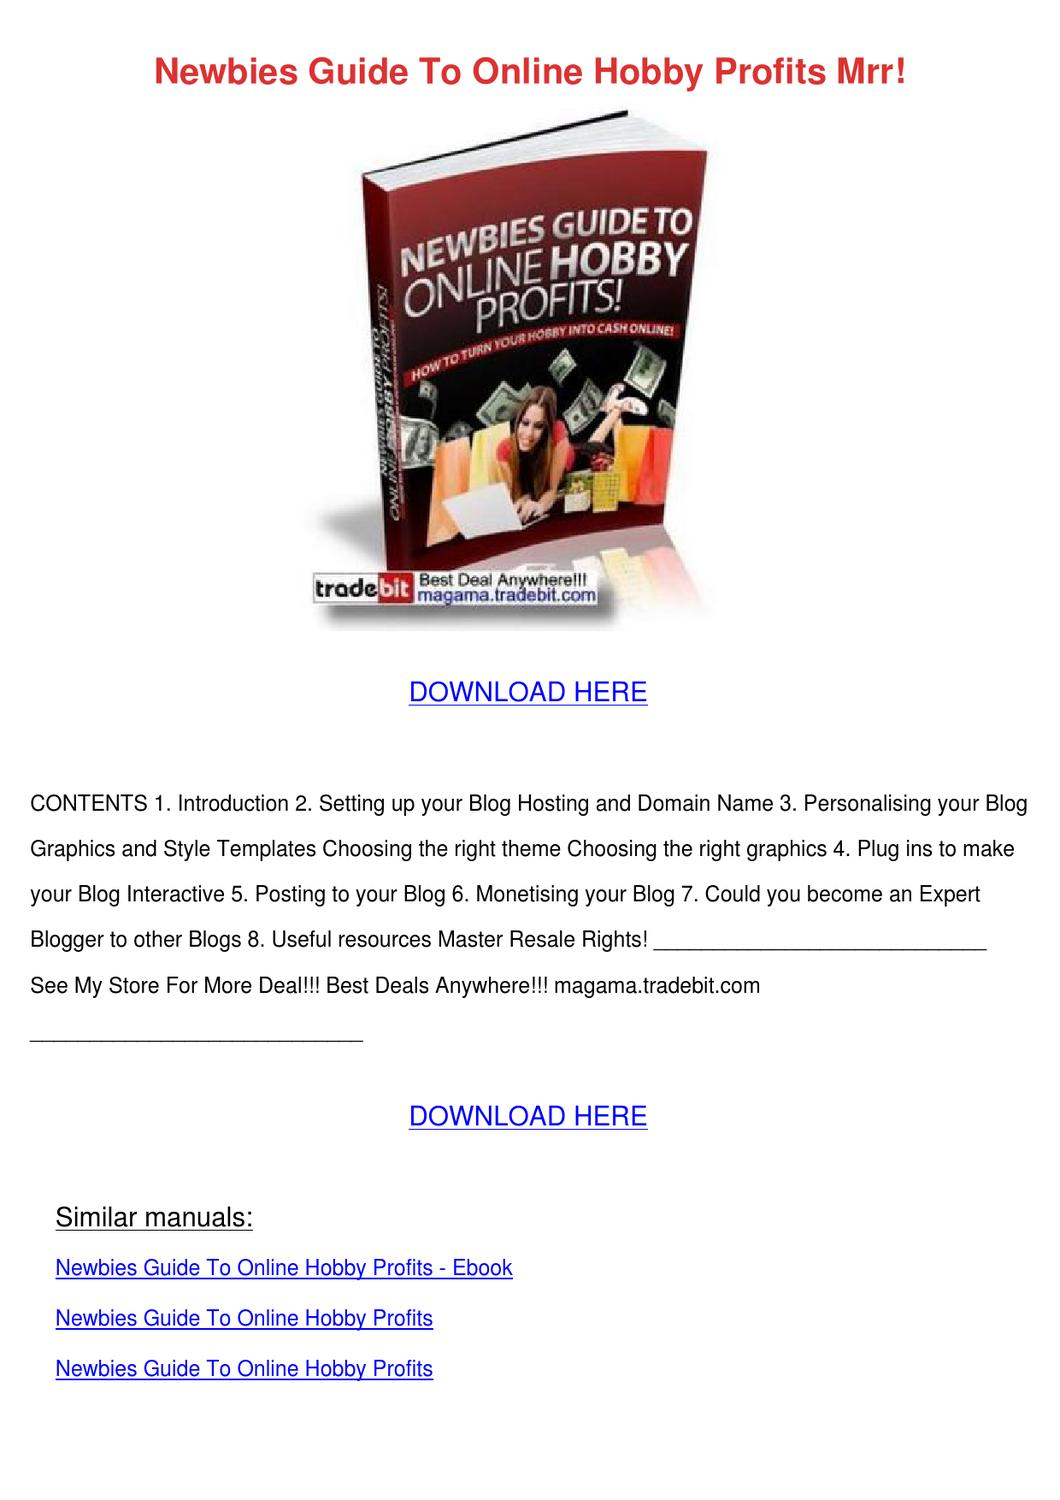 Hobby blogging mrr array newbies guide to online hobby profits mrr by krisjeffrey issuu rh issuu fandeluxe Image collections